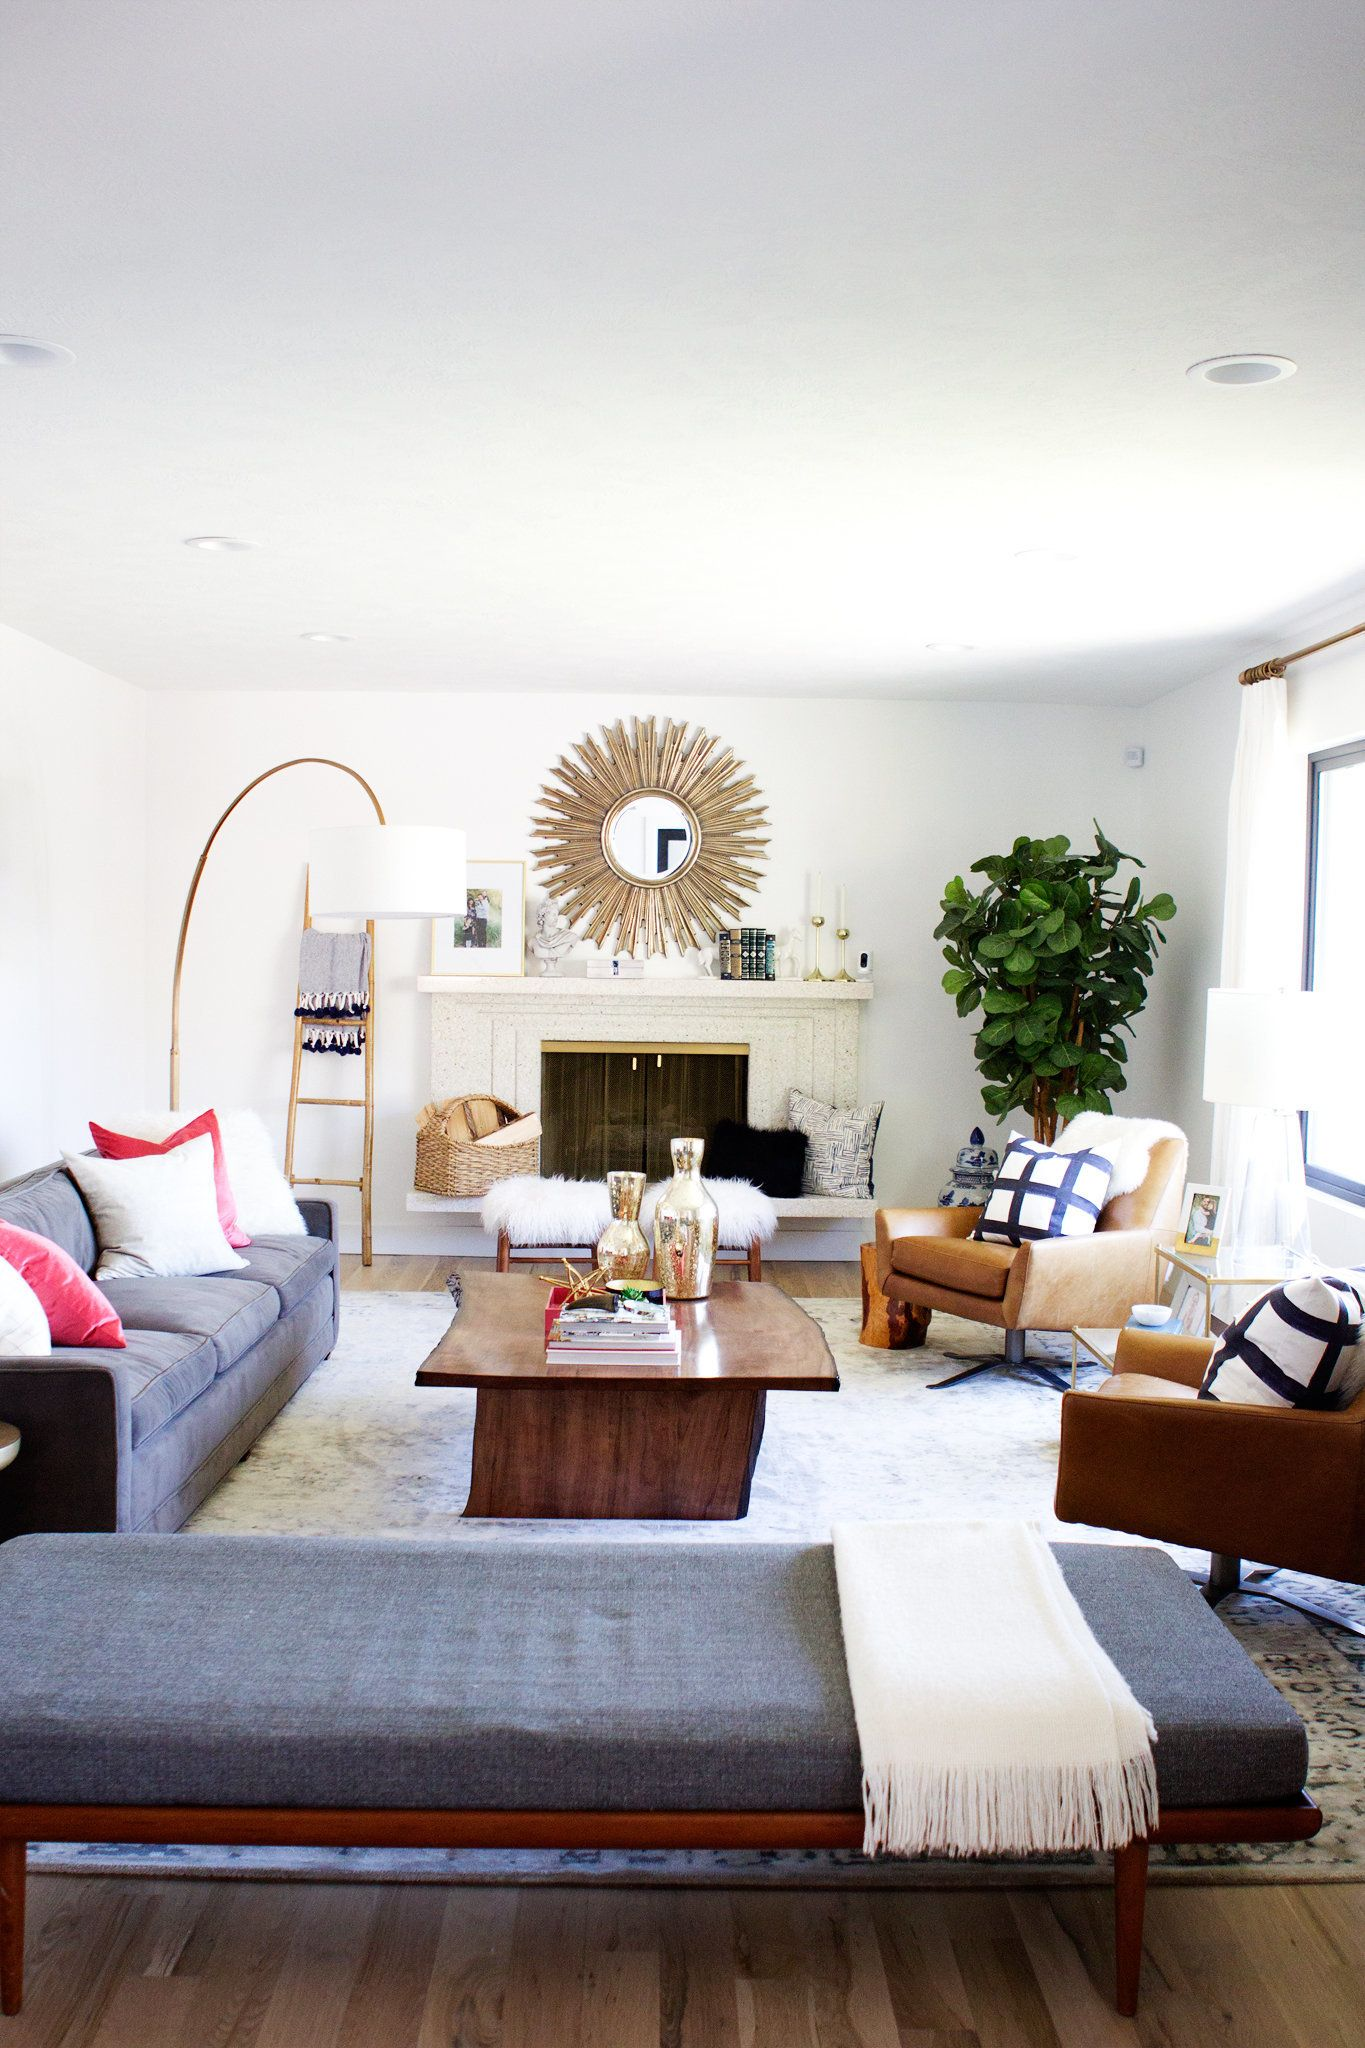 Stagg design a utah based interior design firm our living room